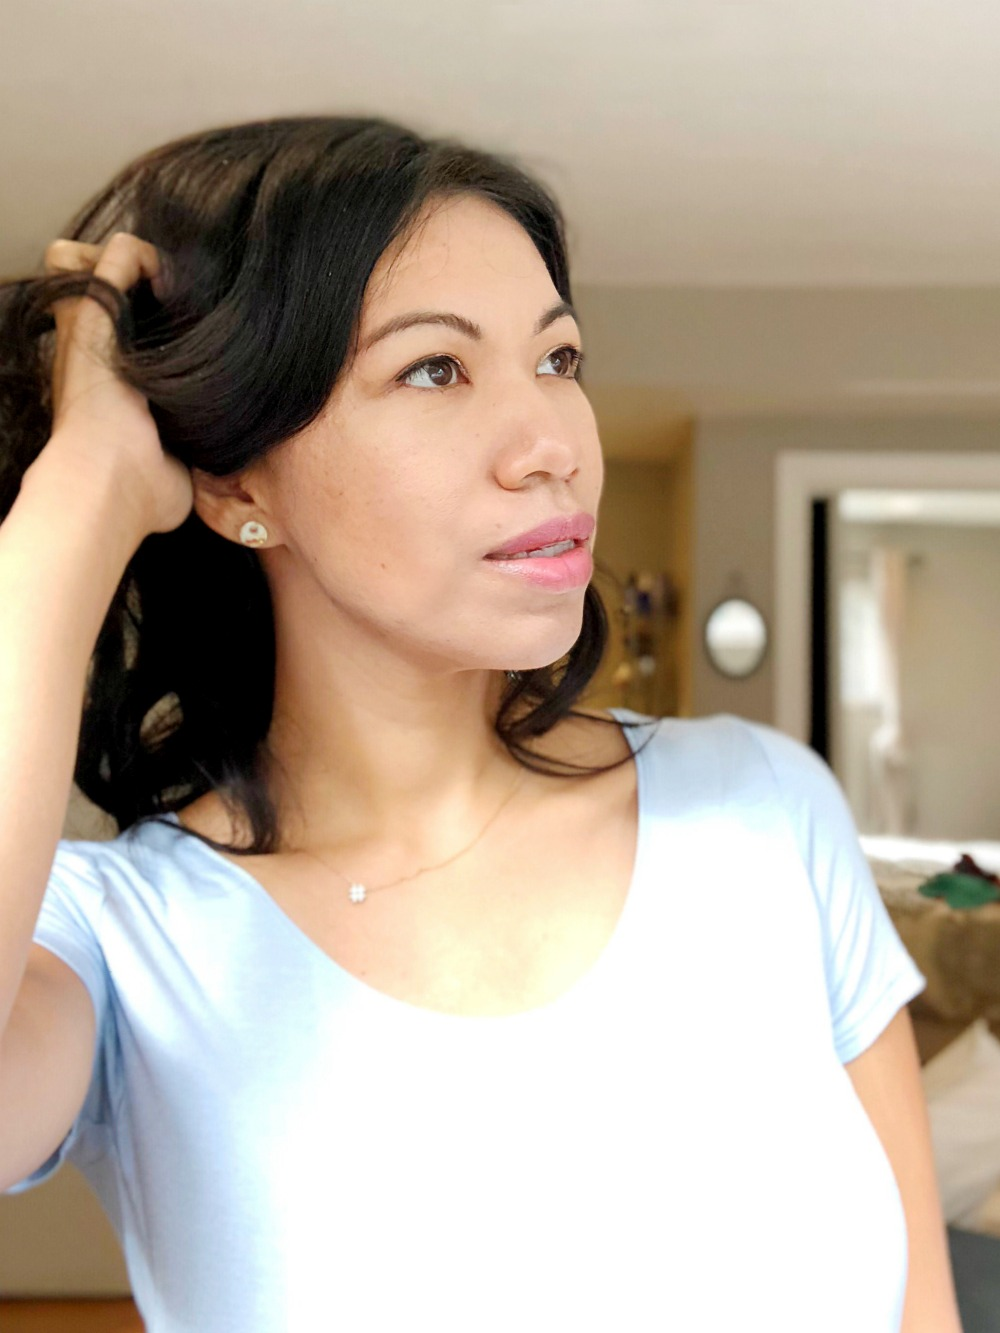 Latina showing how to makeup with highlighted cheekbones